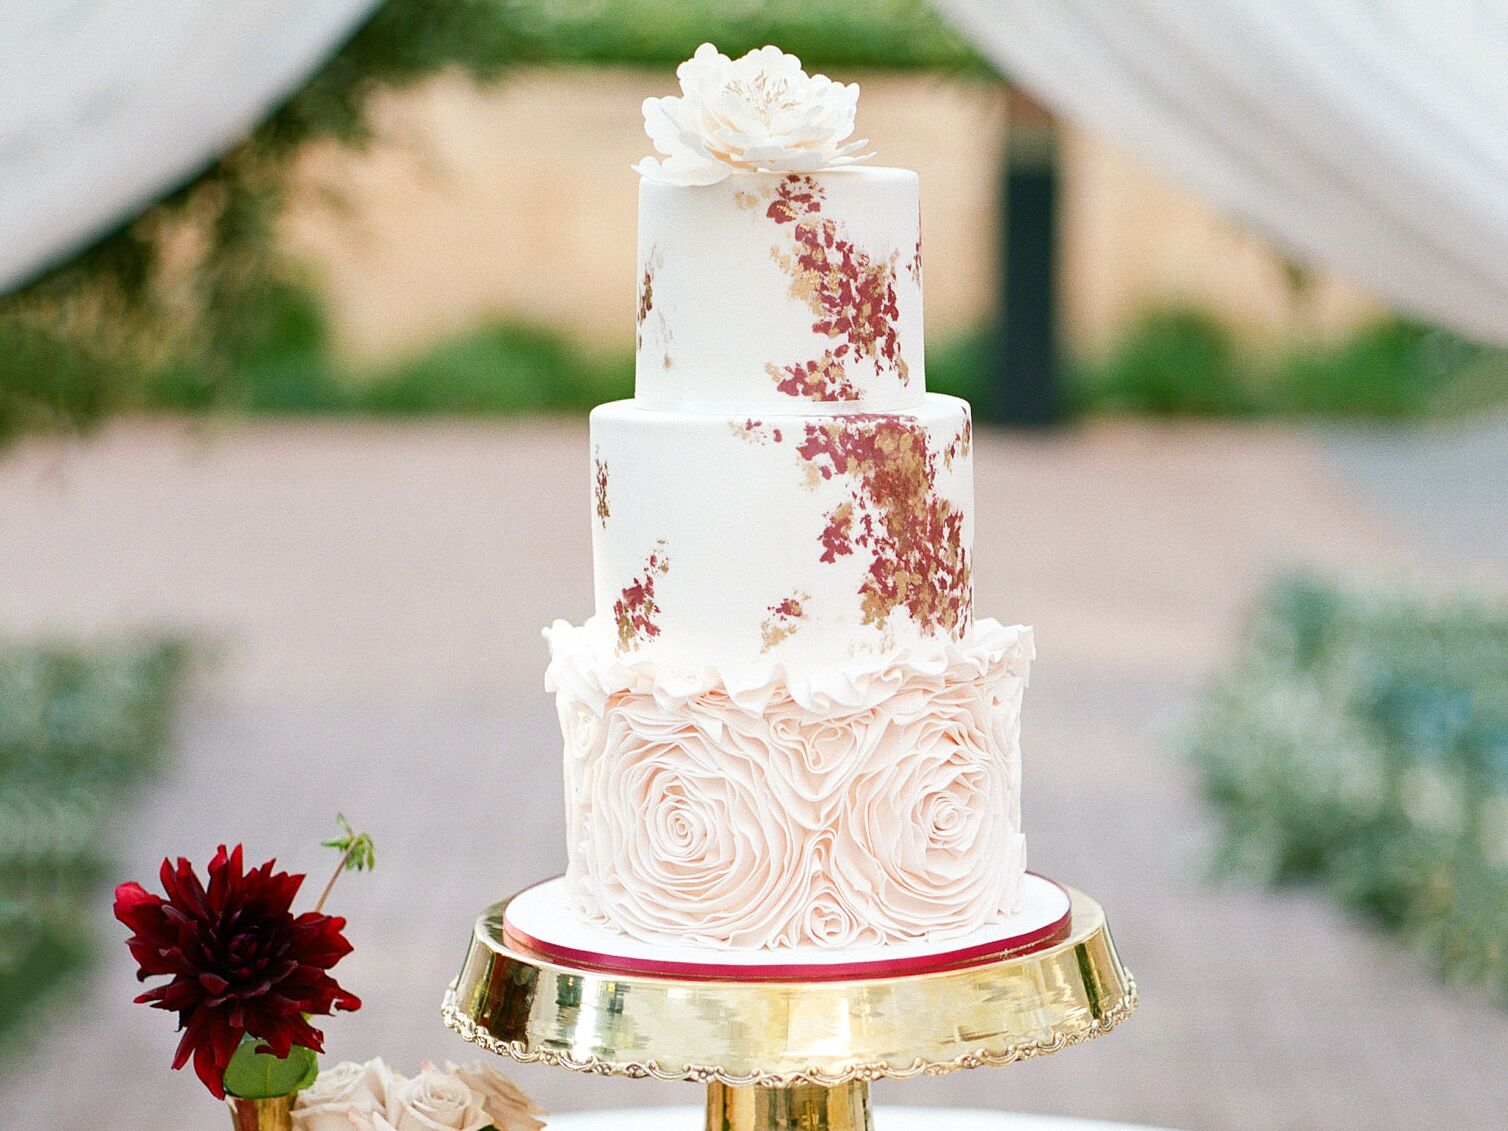 Wedding Cakes: A Complete Wedding Cake Checklist